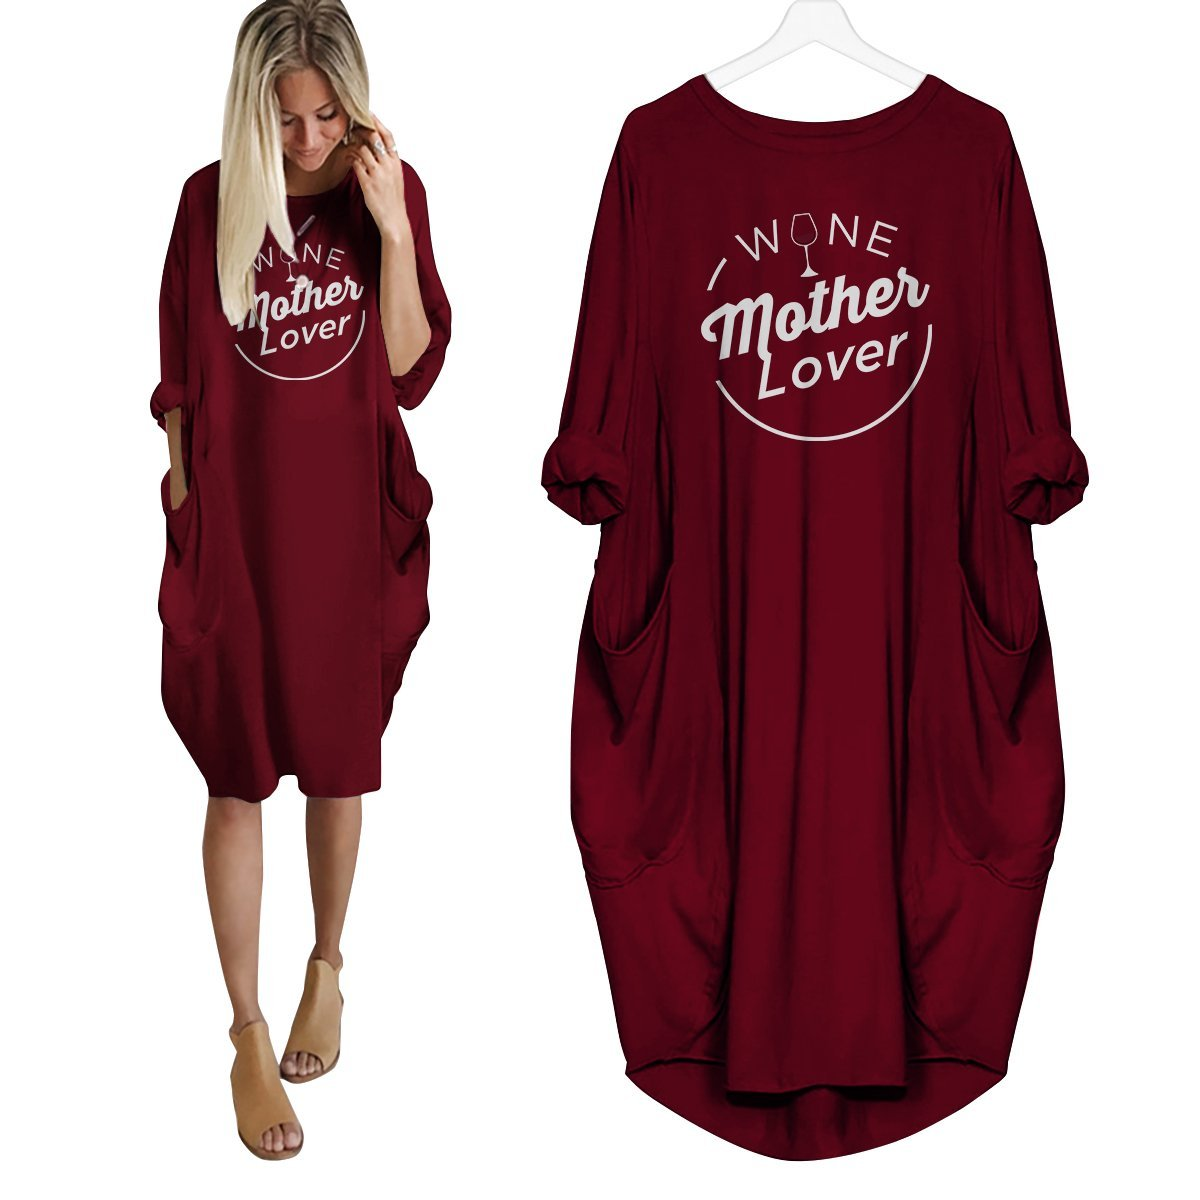 Wine Mother Lover Dress Red / S